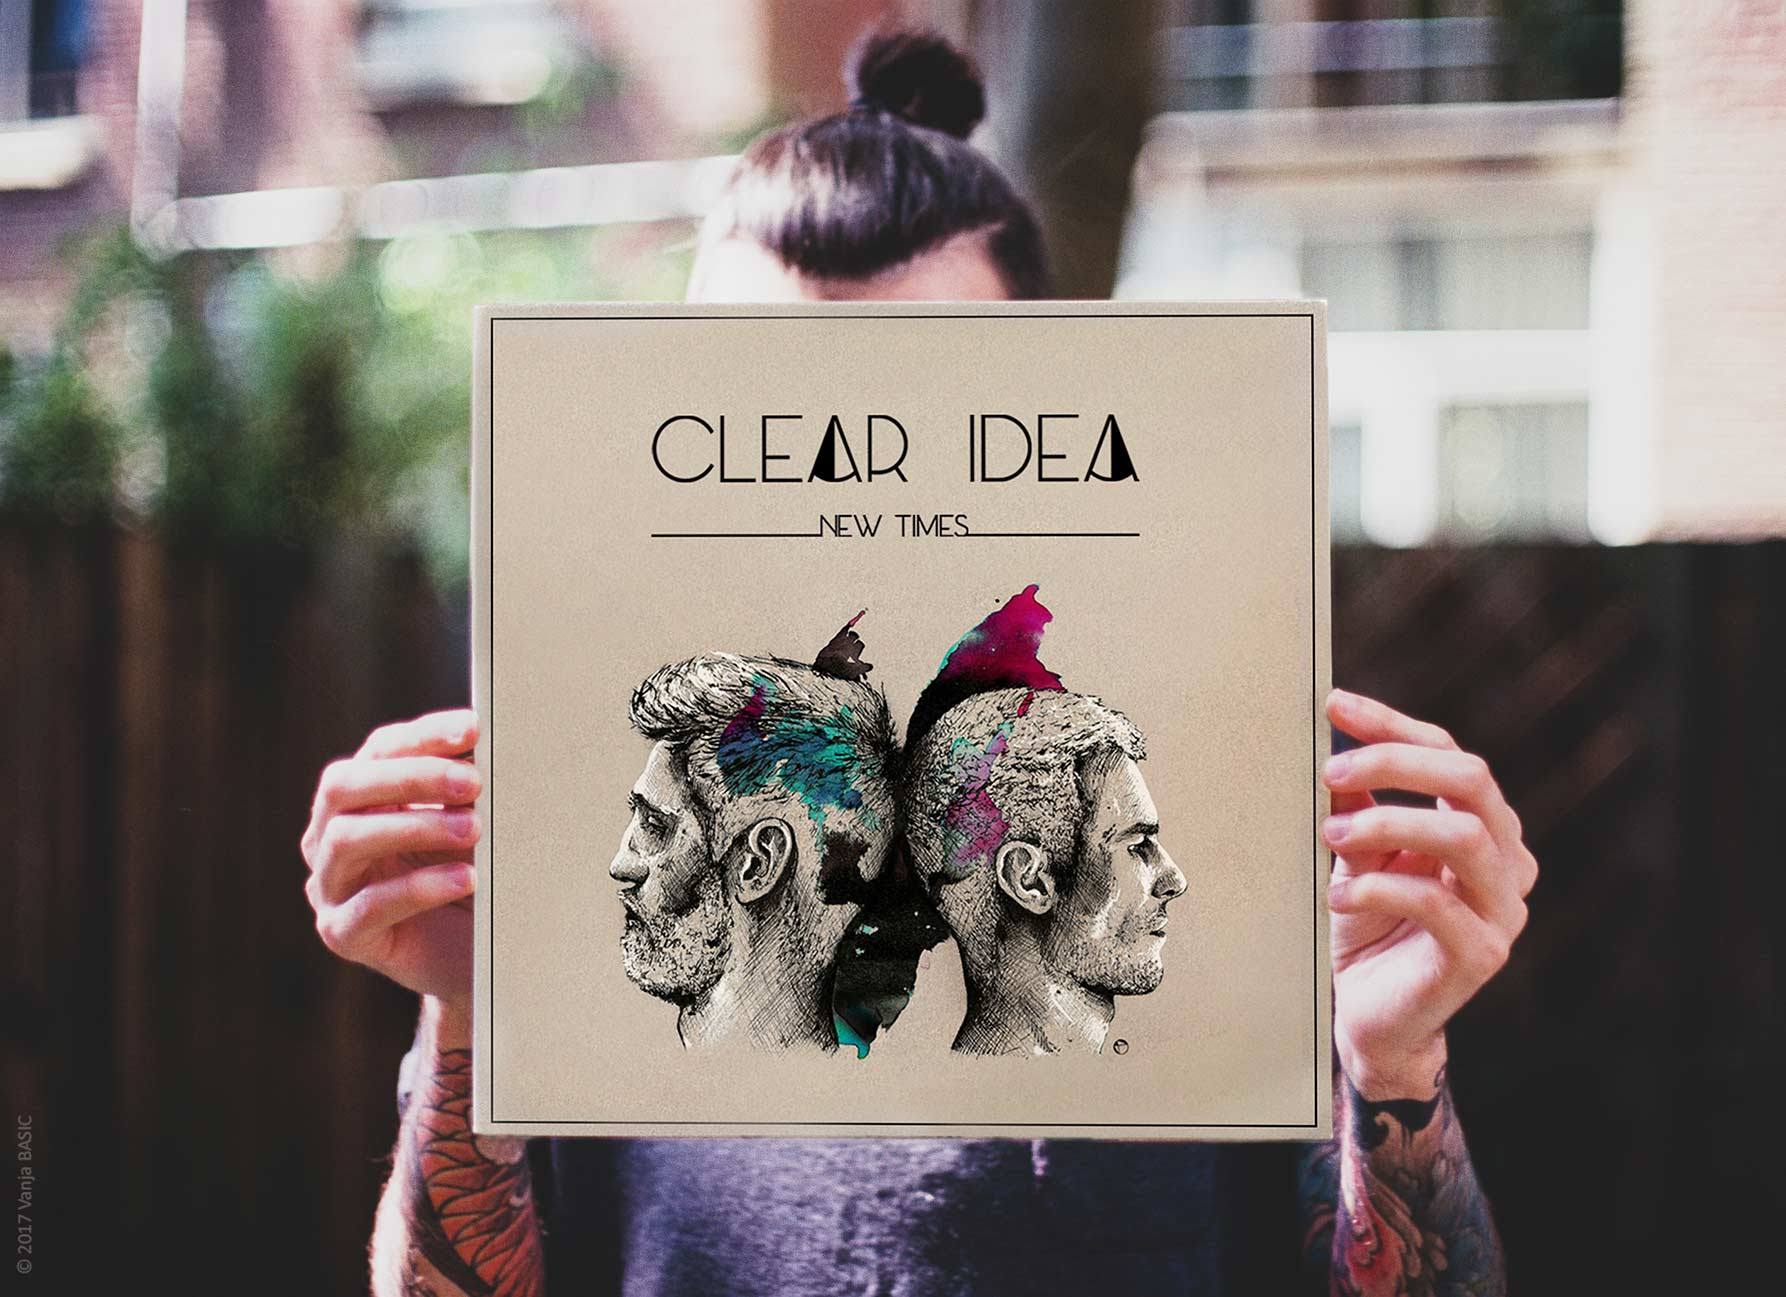 Pochette d'album « New Times » et logo pour Clear Idea, groupe de pop rock anglophone